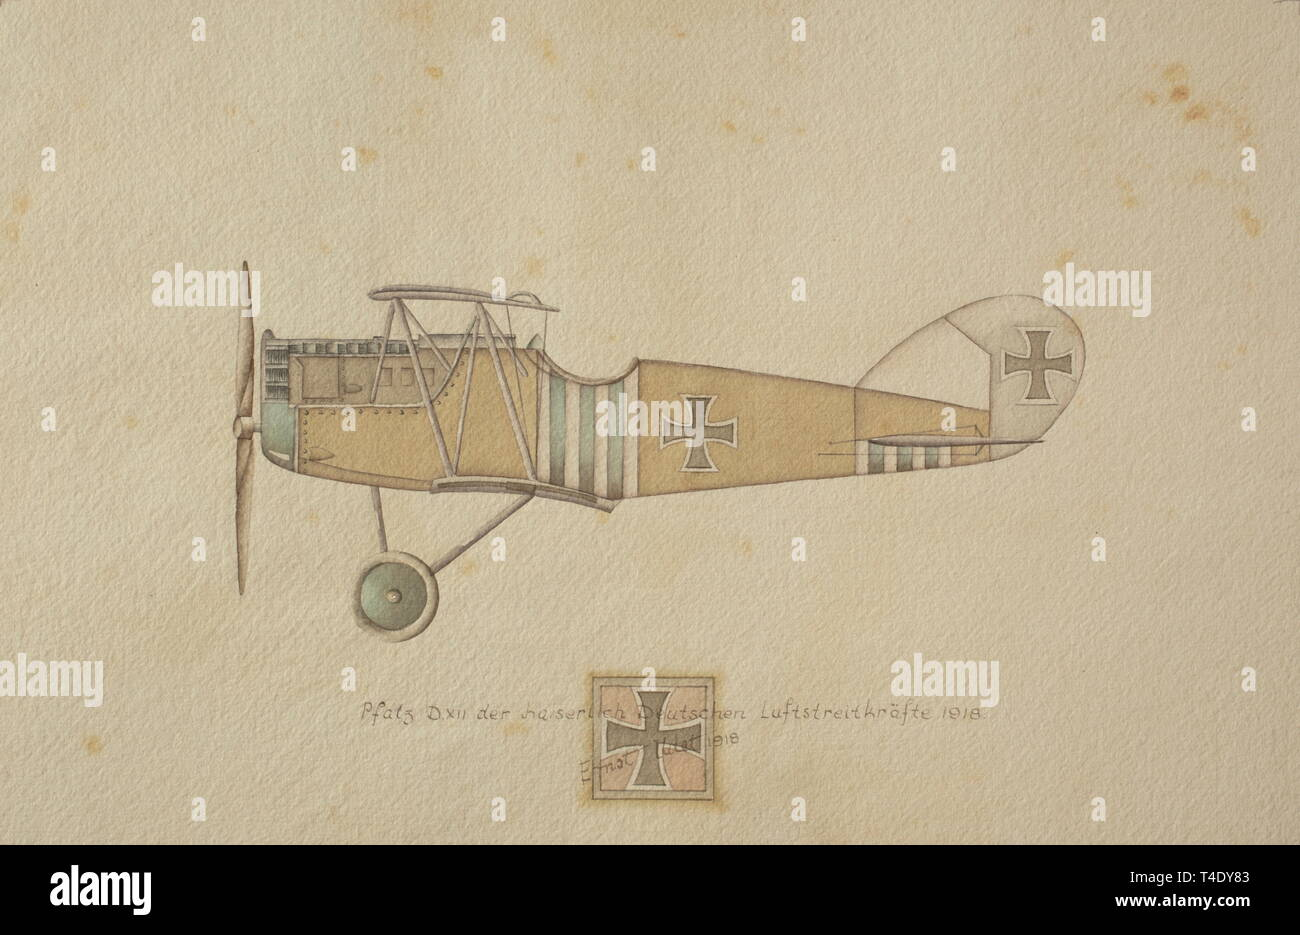 Ernst Udet - twelve drawings of German military aircraft of the 1st World War Aviatik (Berg) D.I. Bomber of the Austro-Hungarian Flying Corps 1917. Rumpler C.IV. Bomber of the Imperial German Flying Corps. Gotha G.V. Bomber of the Imperial German Flying Corps 1918. Halberstadt C.L.II of the Imperial German Flying Corps 1918. Fokker F.V. of the Imperial German Flying Corps 1918. Pfalz D.XII of the Imperial German Flying Corps 1918. Siemens Schuckert D III of the Imperial German Flying Corps. Fighter Squadron 4, Metz 1918 (Udet´s personal plane with the inscription 'LO!' for , Editorial-Use-Only - Stock Image